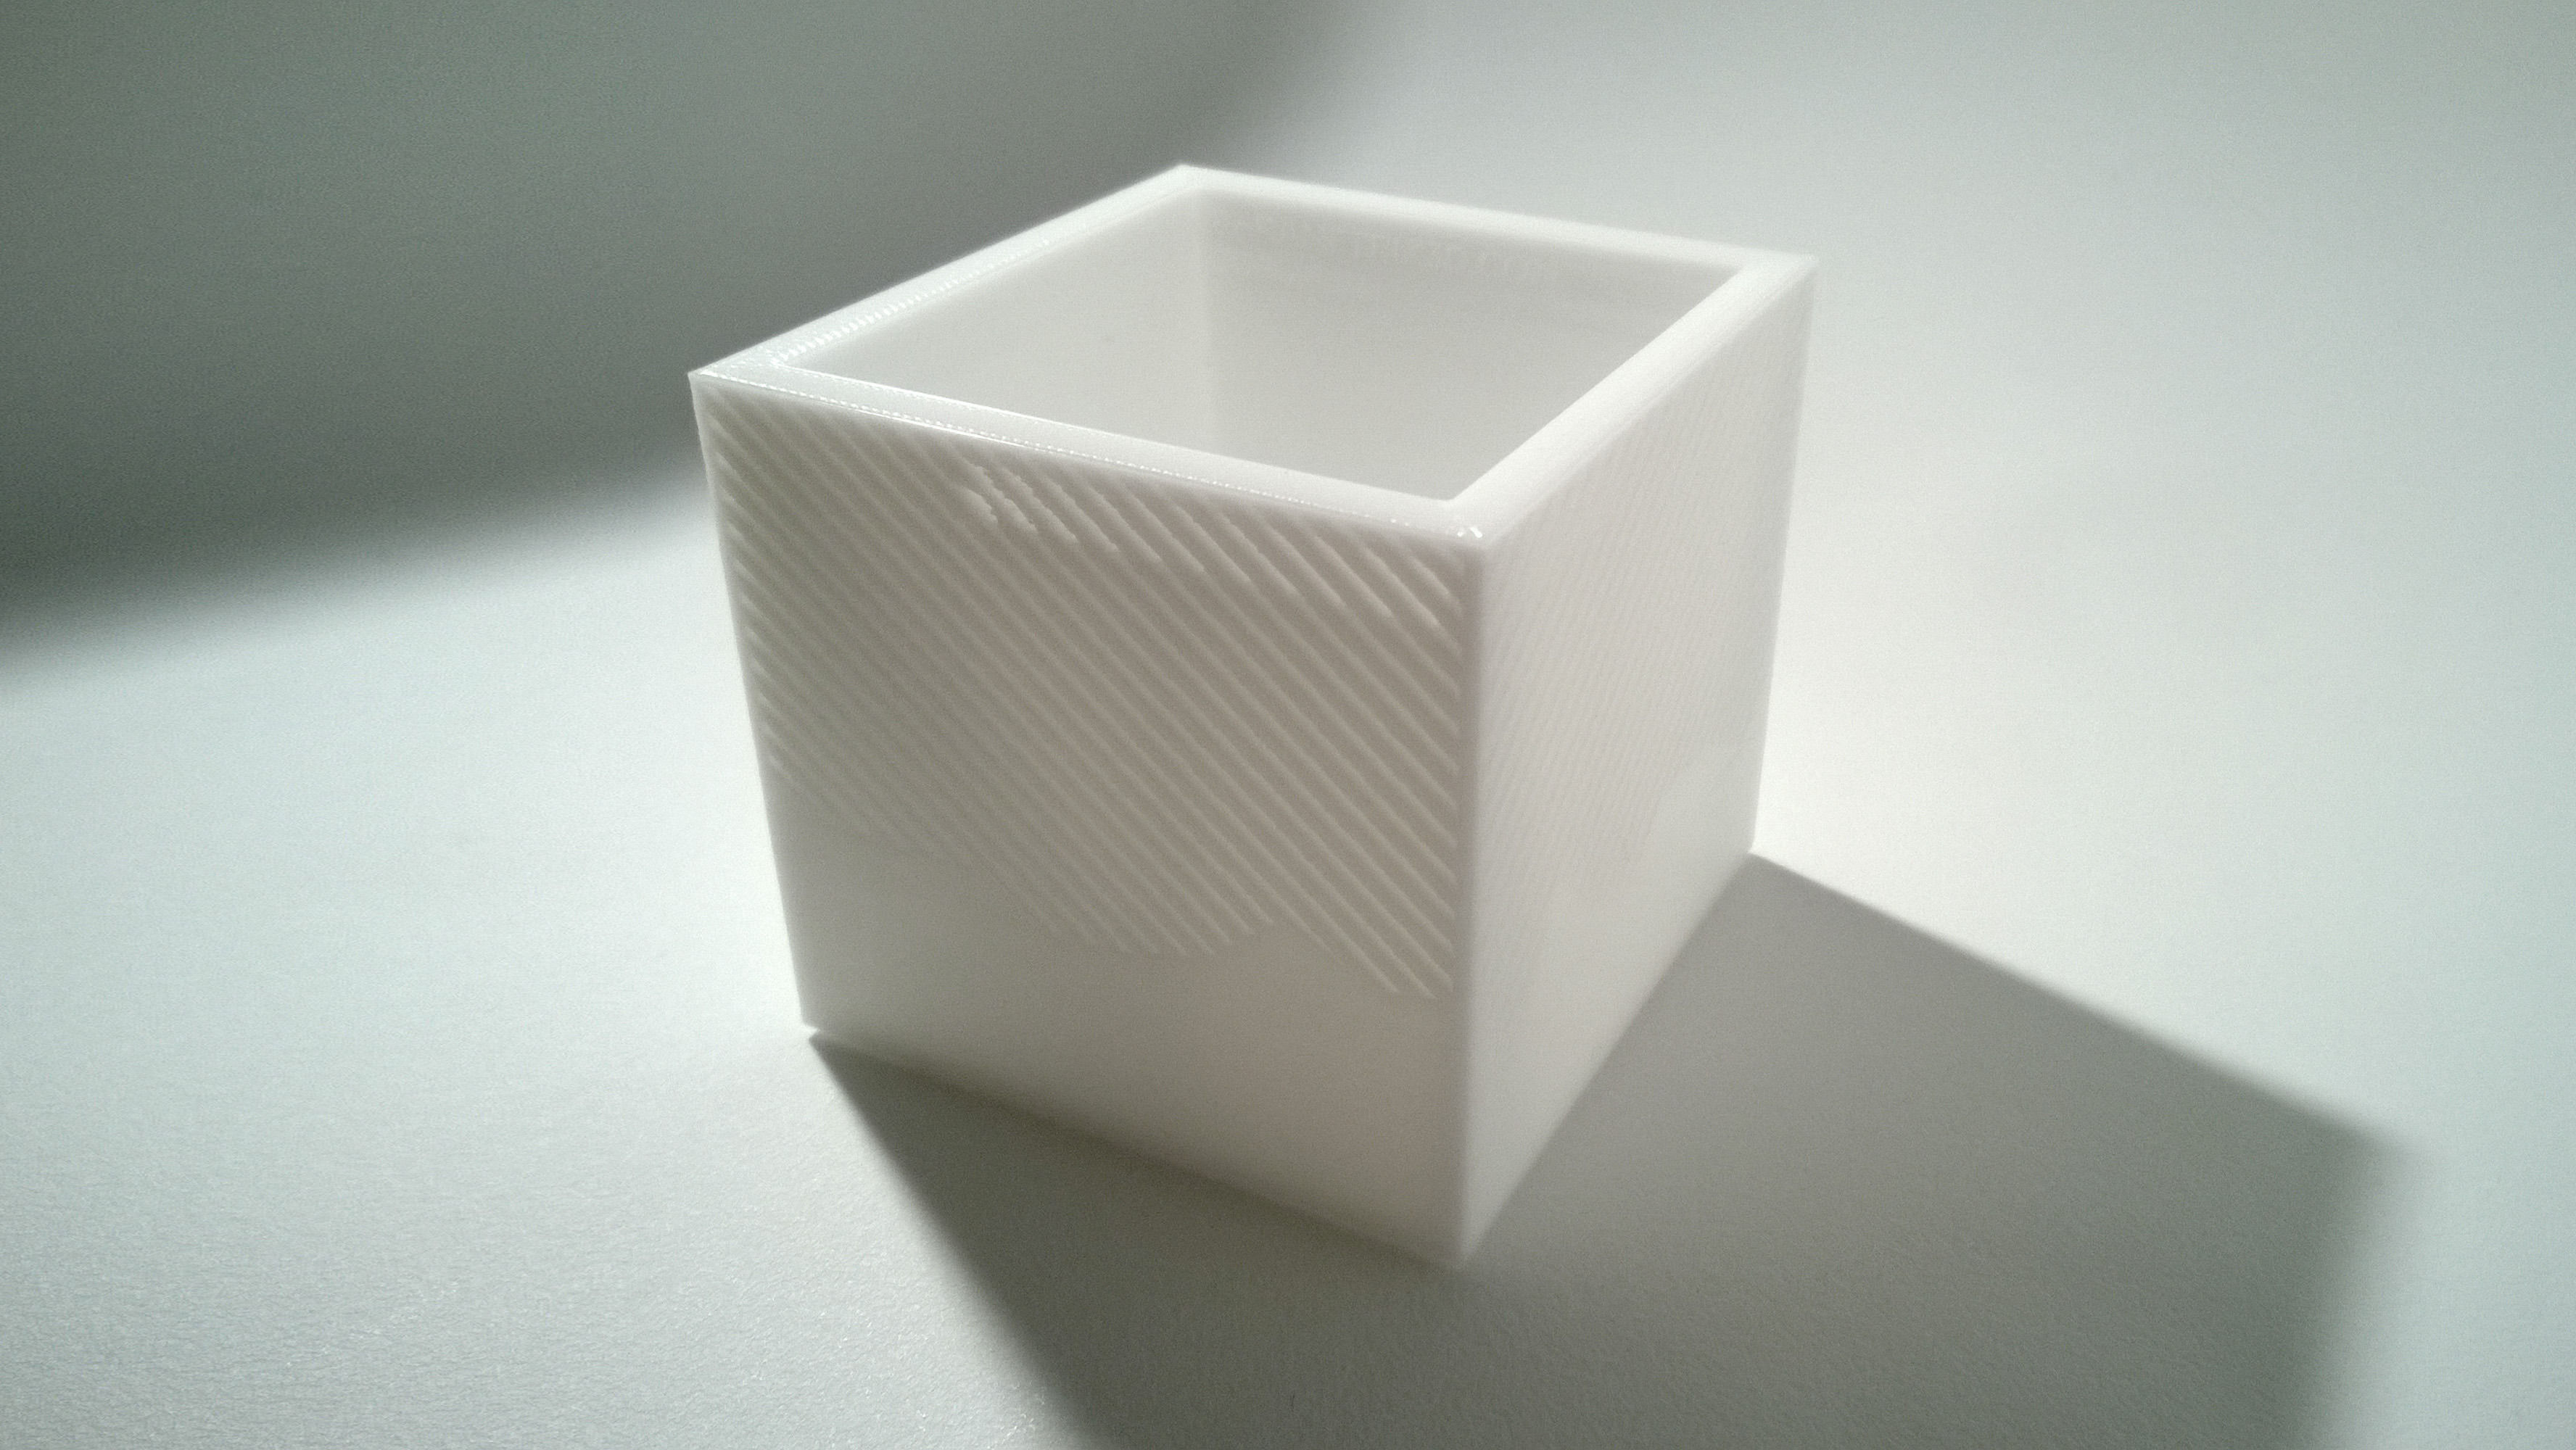 003g - Planter - Small Cuboid With Pattern -